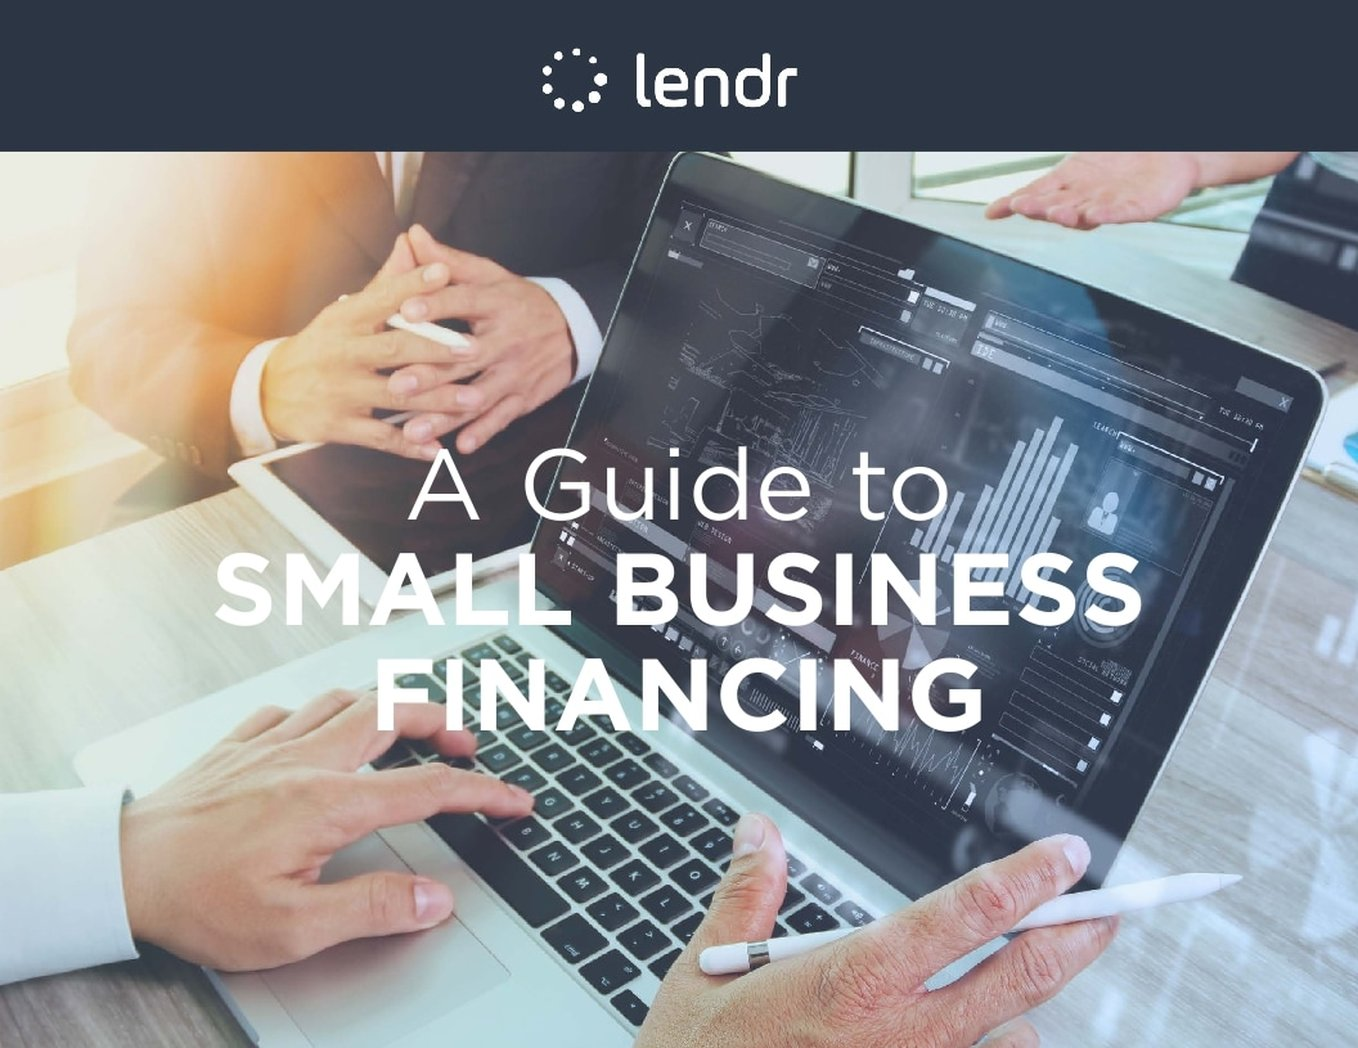 a guide to small business financing